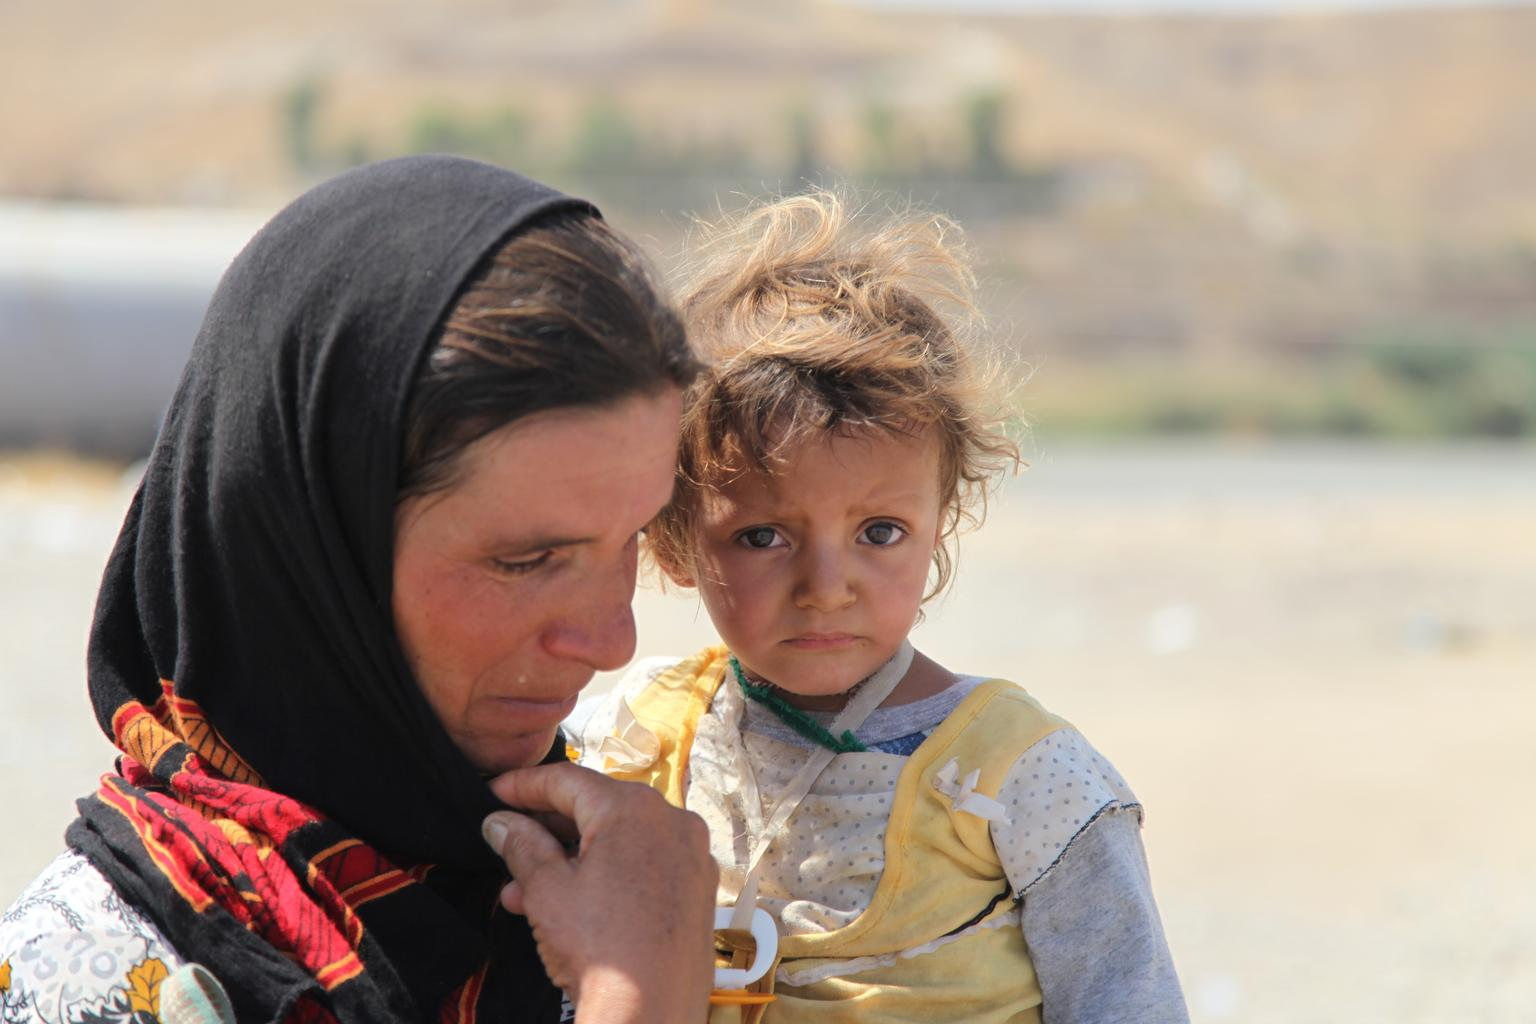 A Yazidi woman who fled Sinjar Mountain re-enters Iraq from Syria at a border crossing in Peshkhabour, Dohuk Governorate. © UNICEF/NYHQ2014-1247/Khuzaie